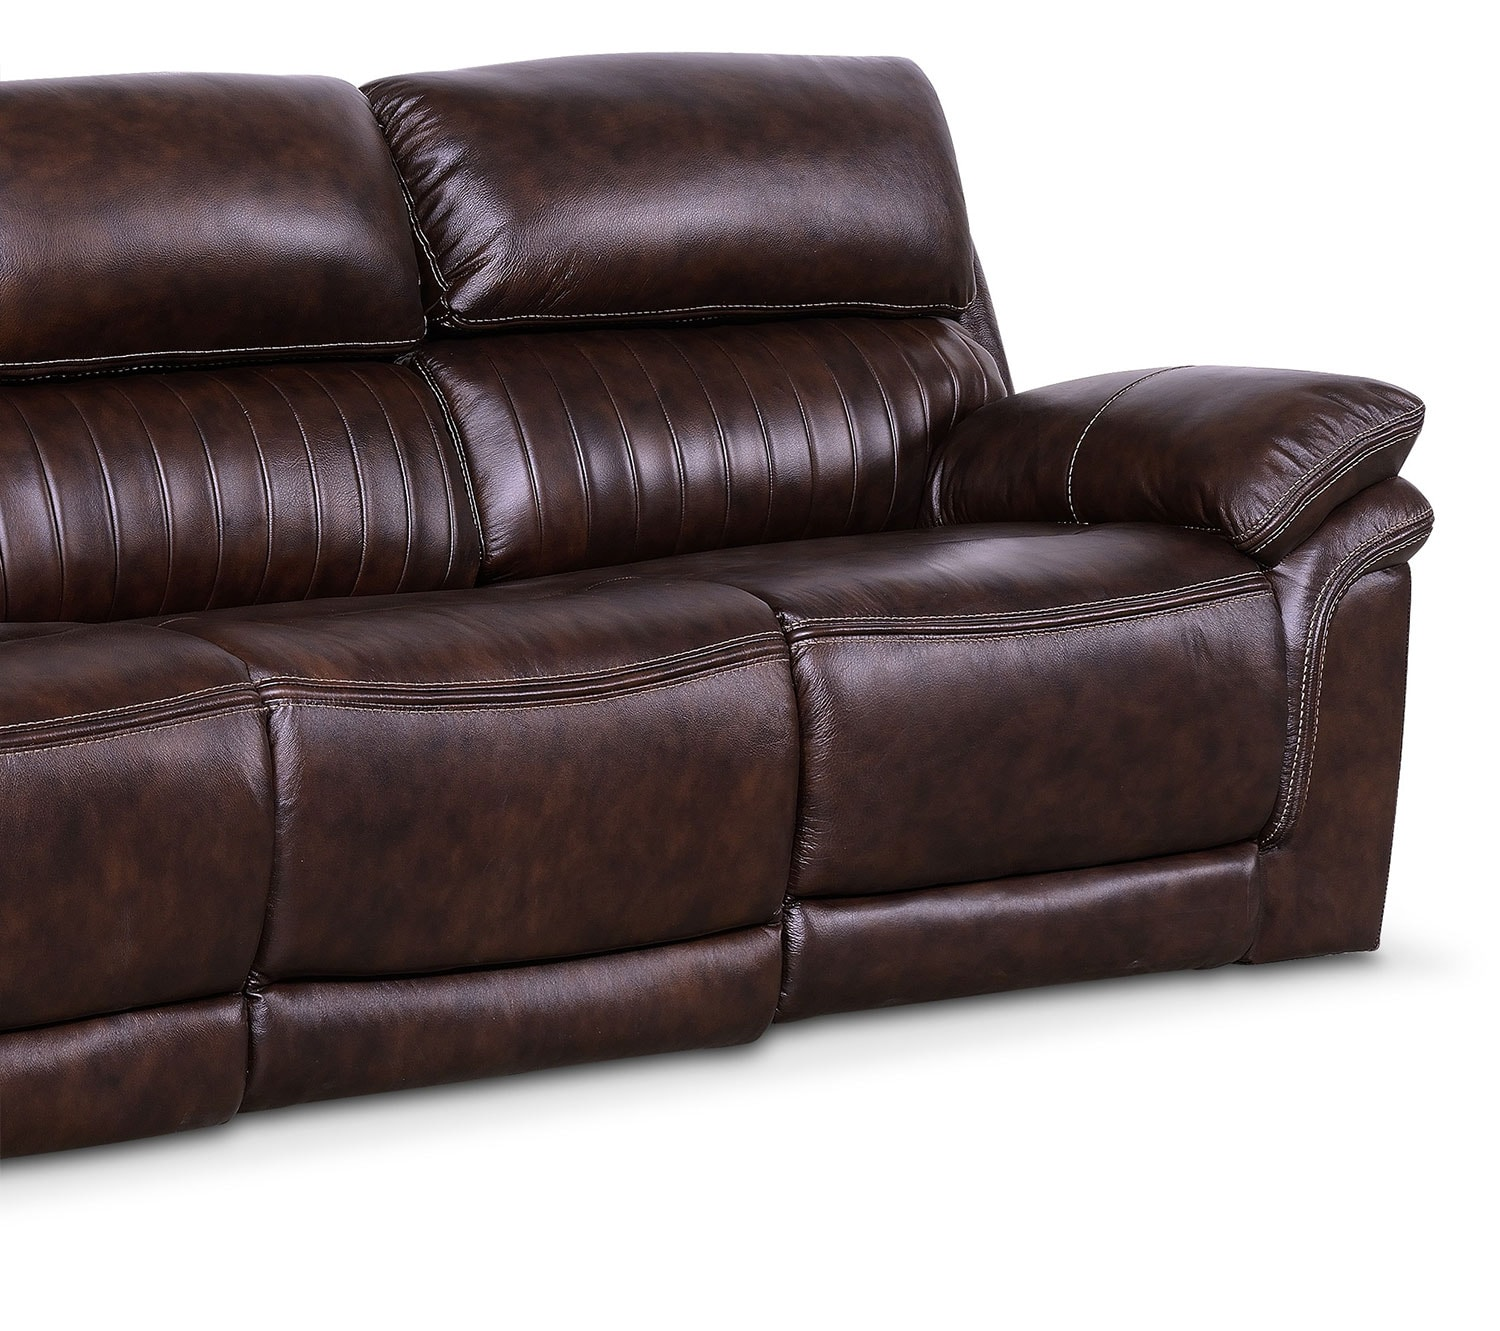 Monterey 3-Piece Power Reclining Sofa - Chocolate by One80  sc 1 st  Value City Furniture & Monterey 3-Piece Power Reclining Sofa - Chocolate | Value City ... islam-shia.org